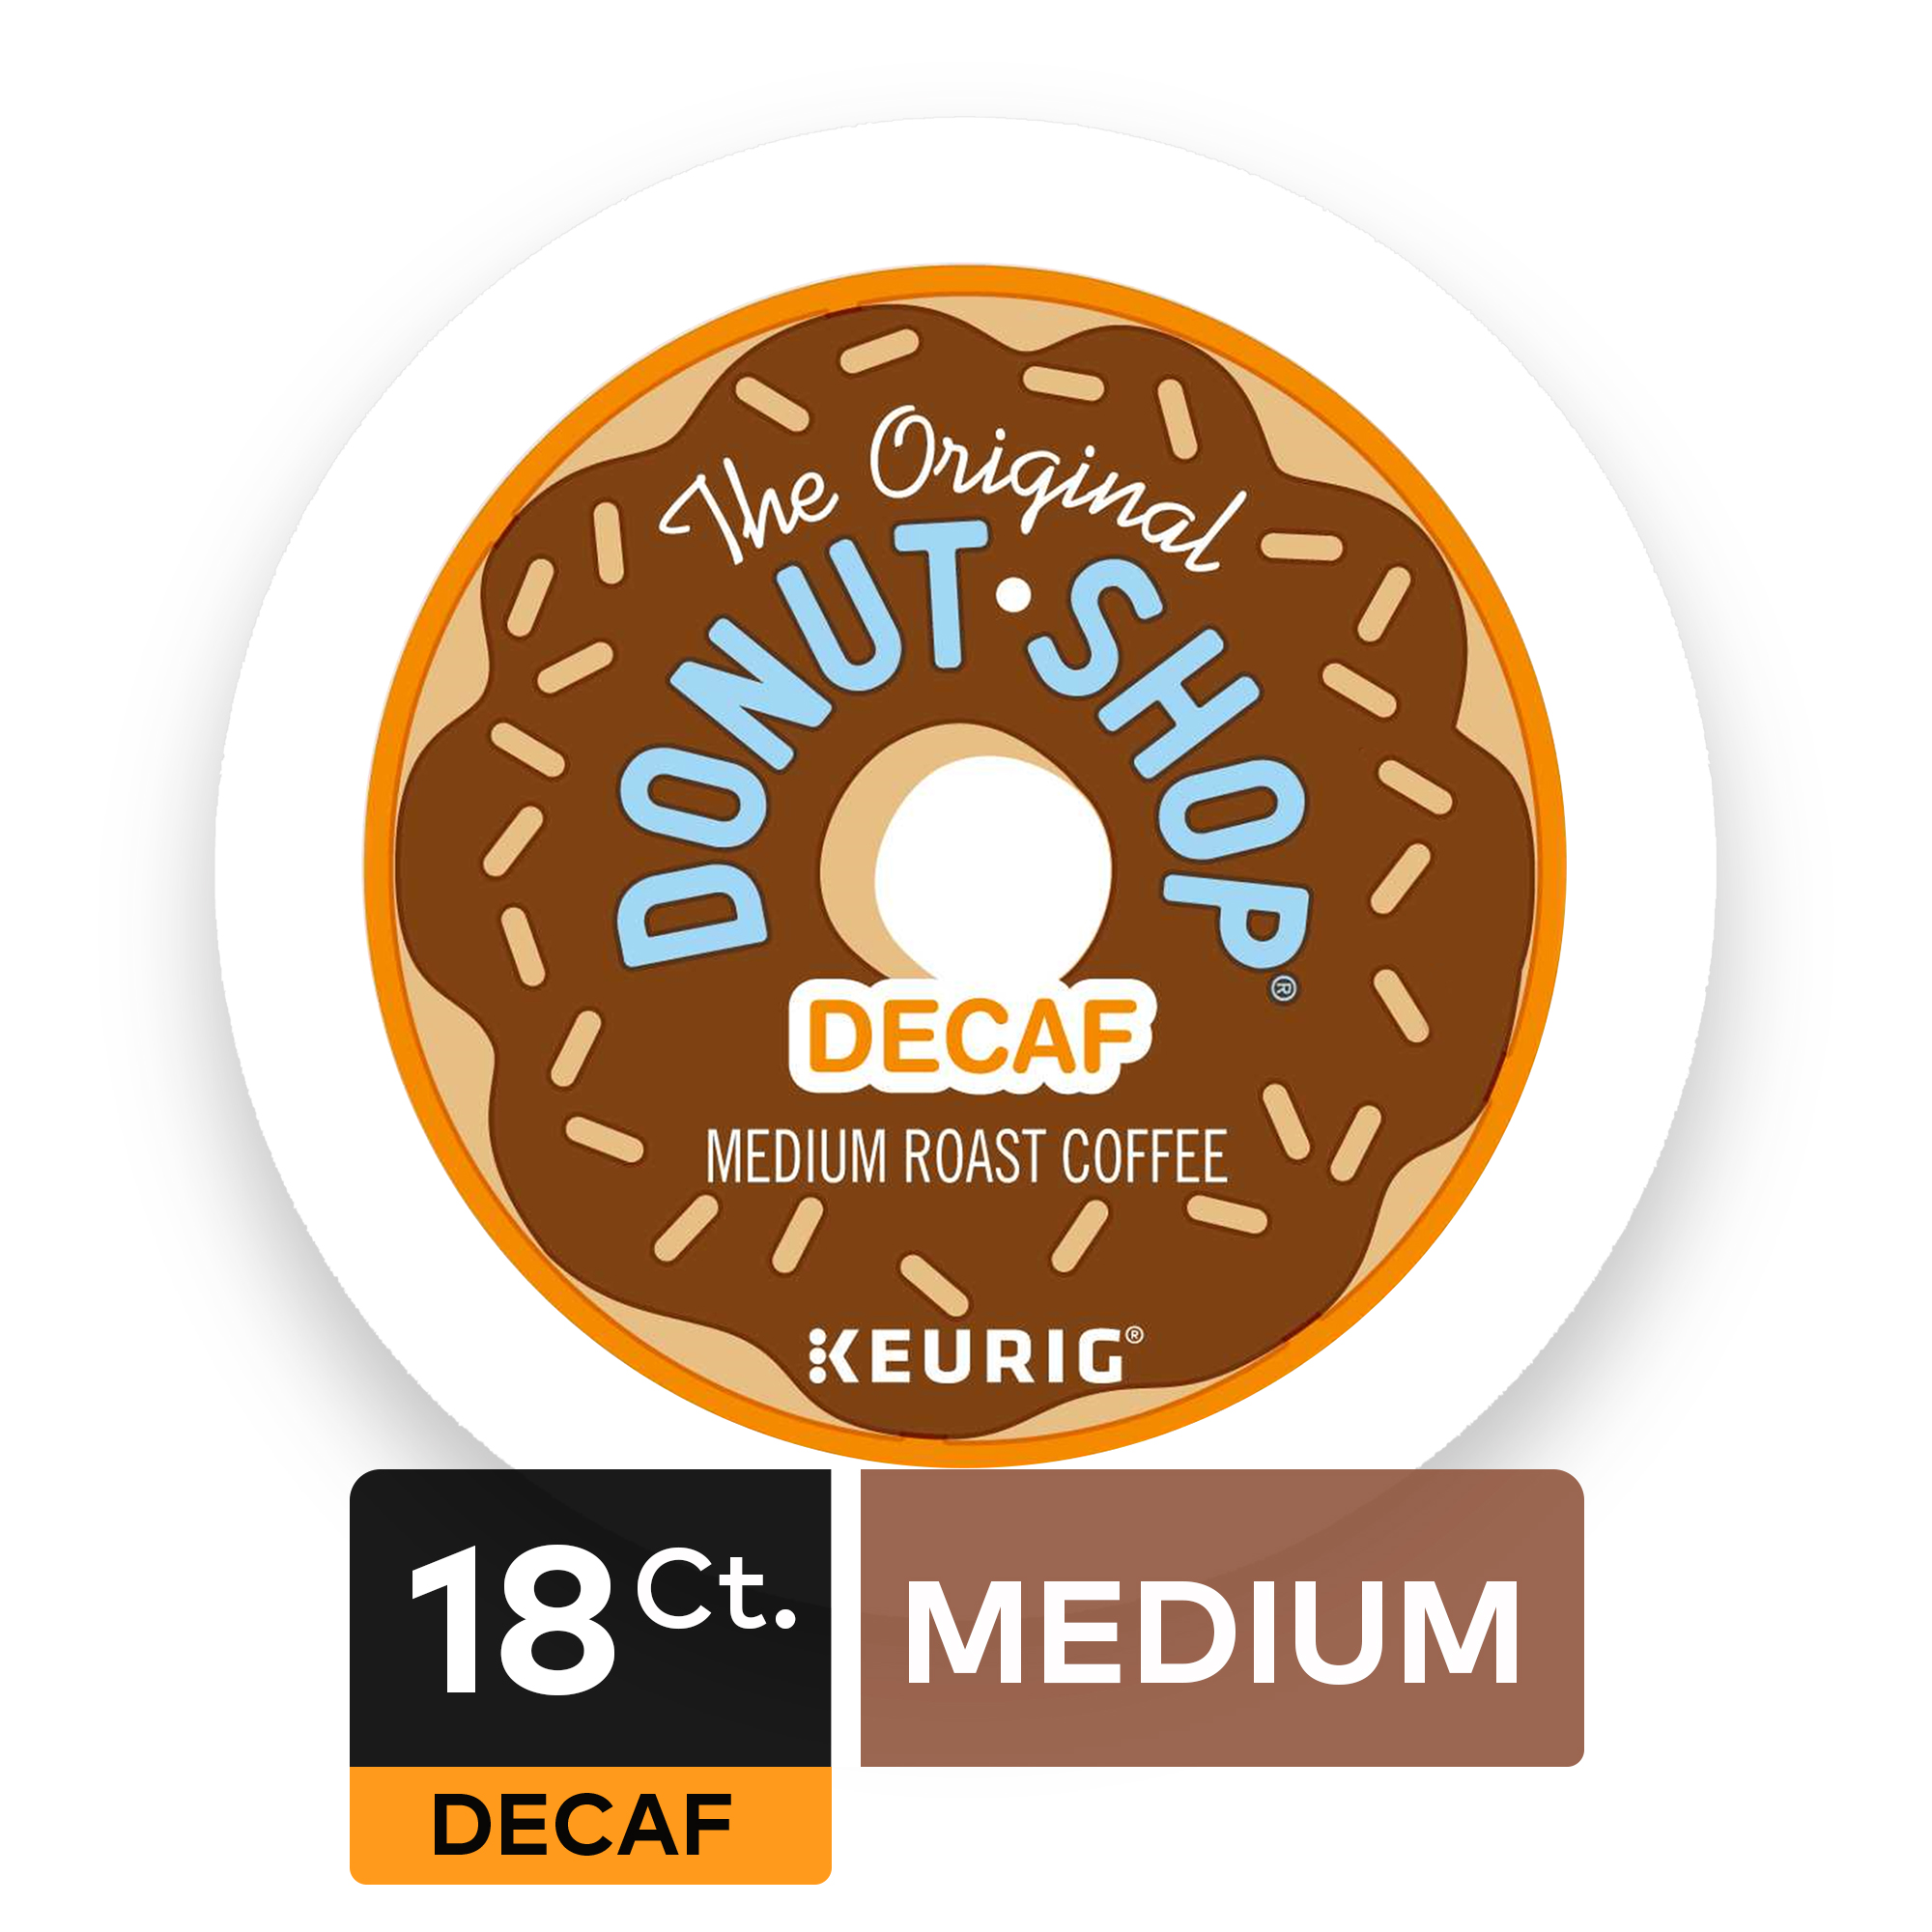 (4 Pack) The Original Donut Shop Decaf Coffee, Keurig K-Cup Pods, Medium Roast, 18 Count